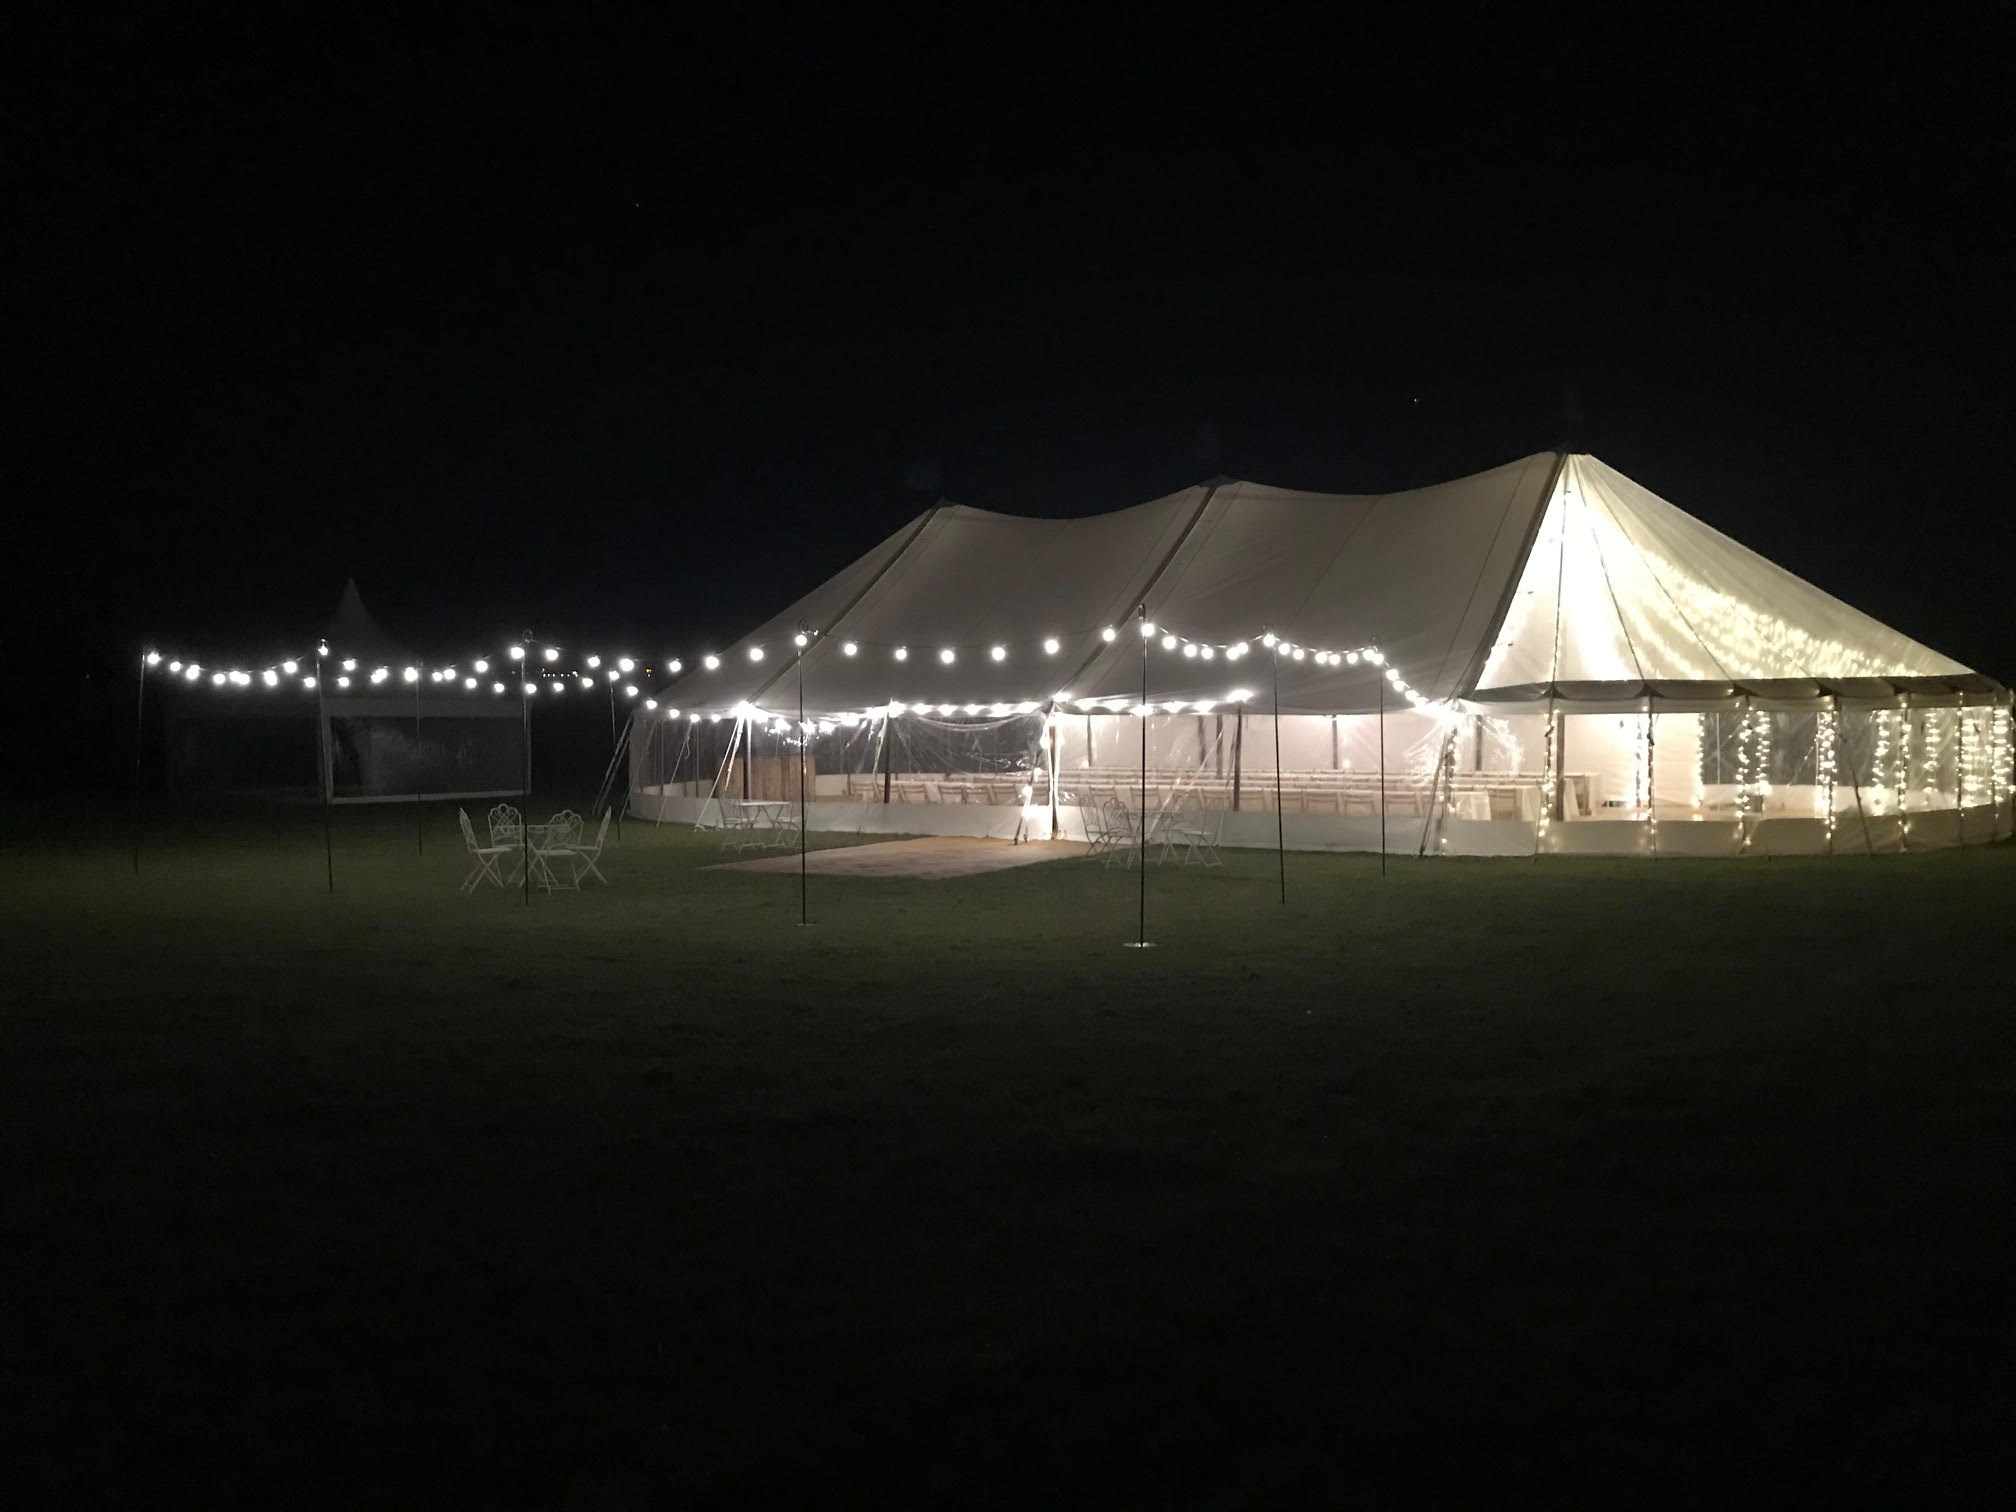 County Marquees East Anglia Sail Cloth Marquee Hire with Festoon Lighting at night